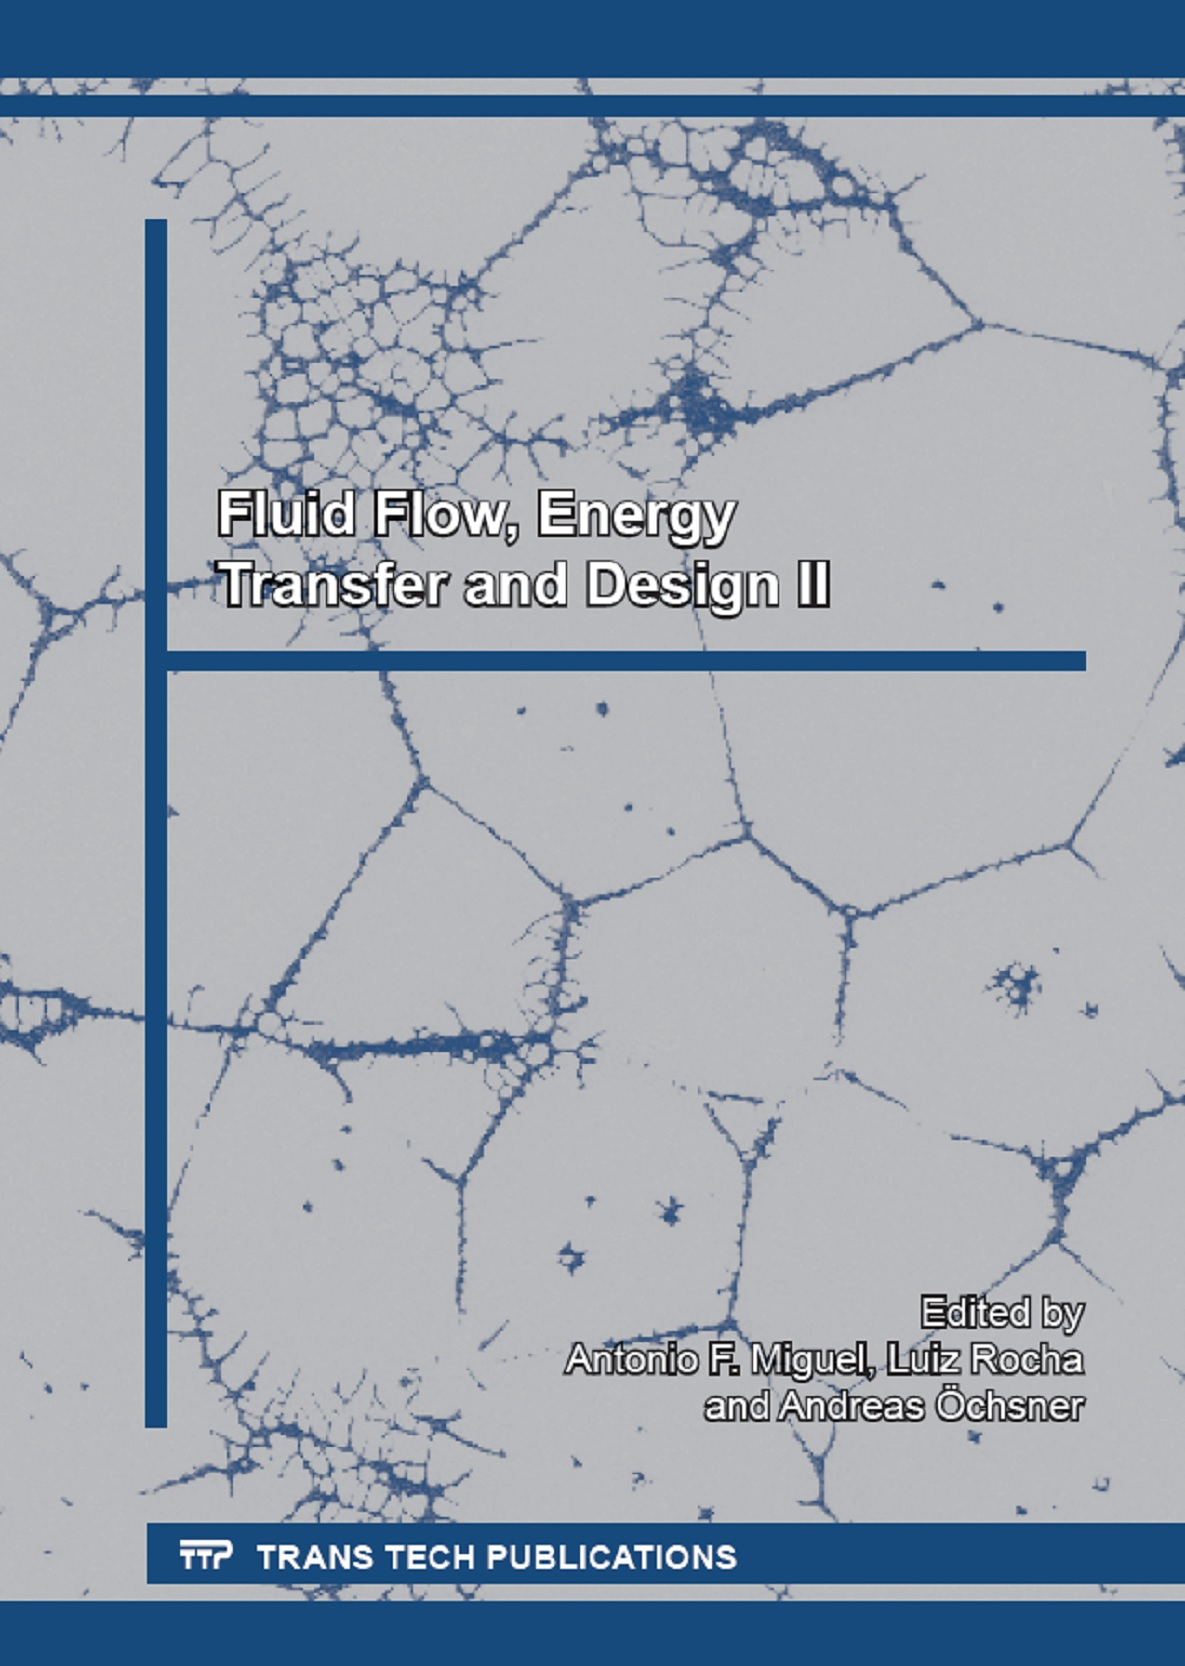 Fluid Flow, Energy Transfer and Design II